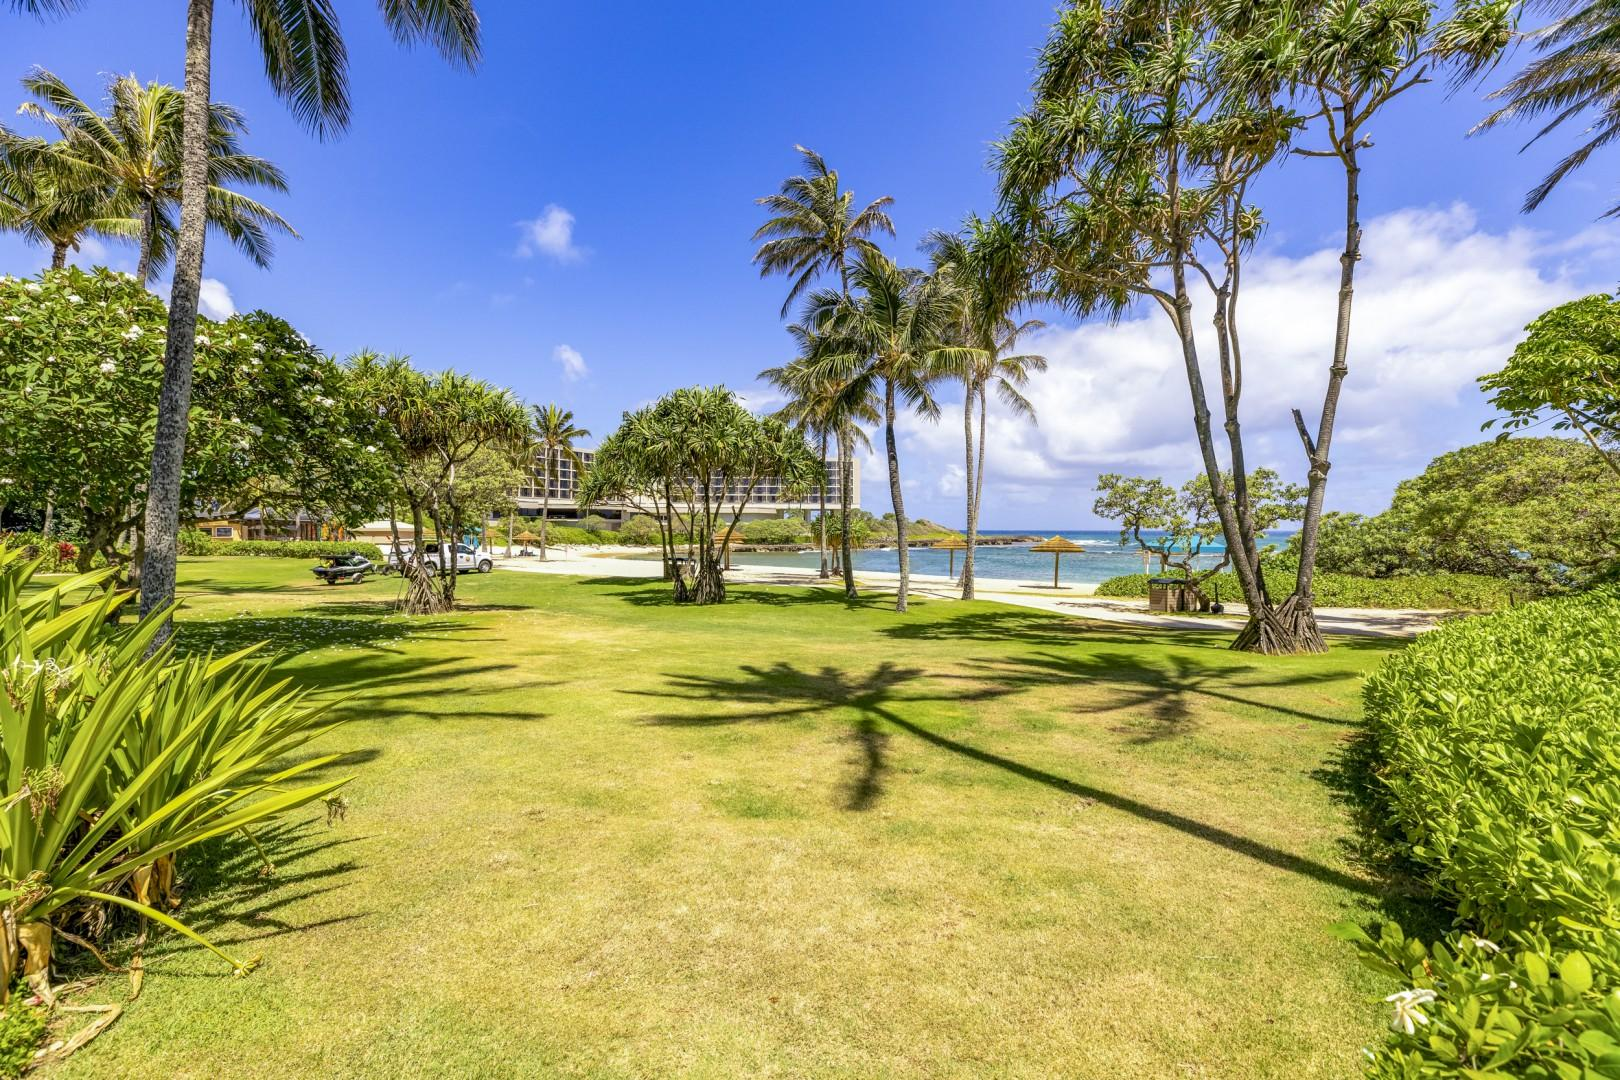 Bay View Beach Lawn fronting the Villas